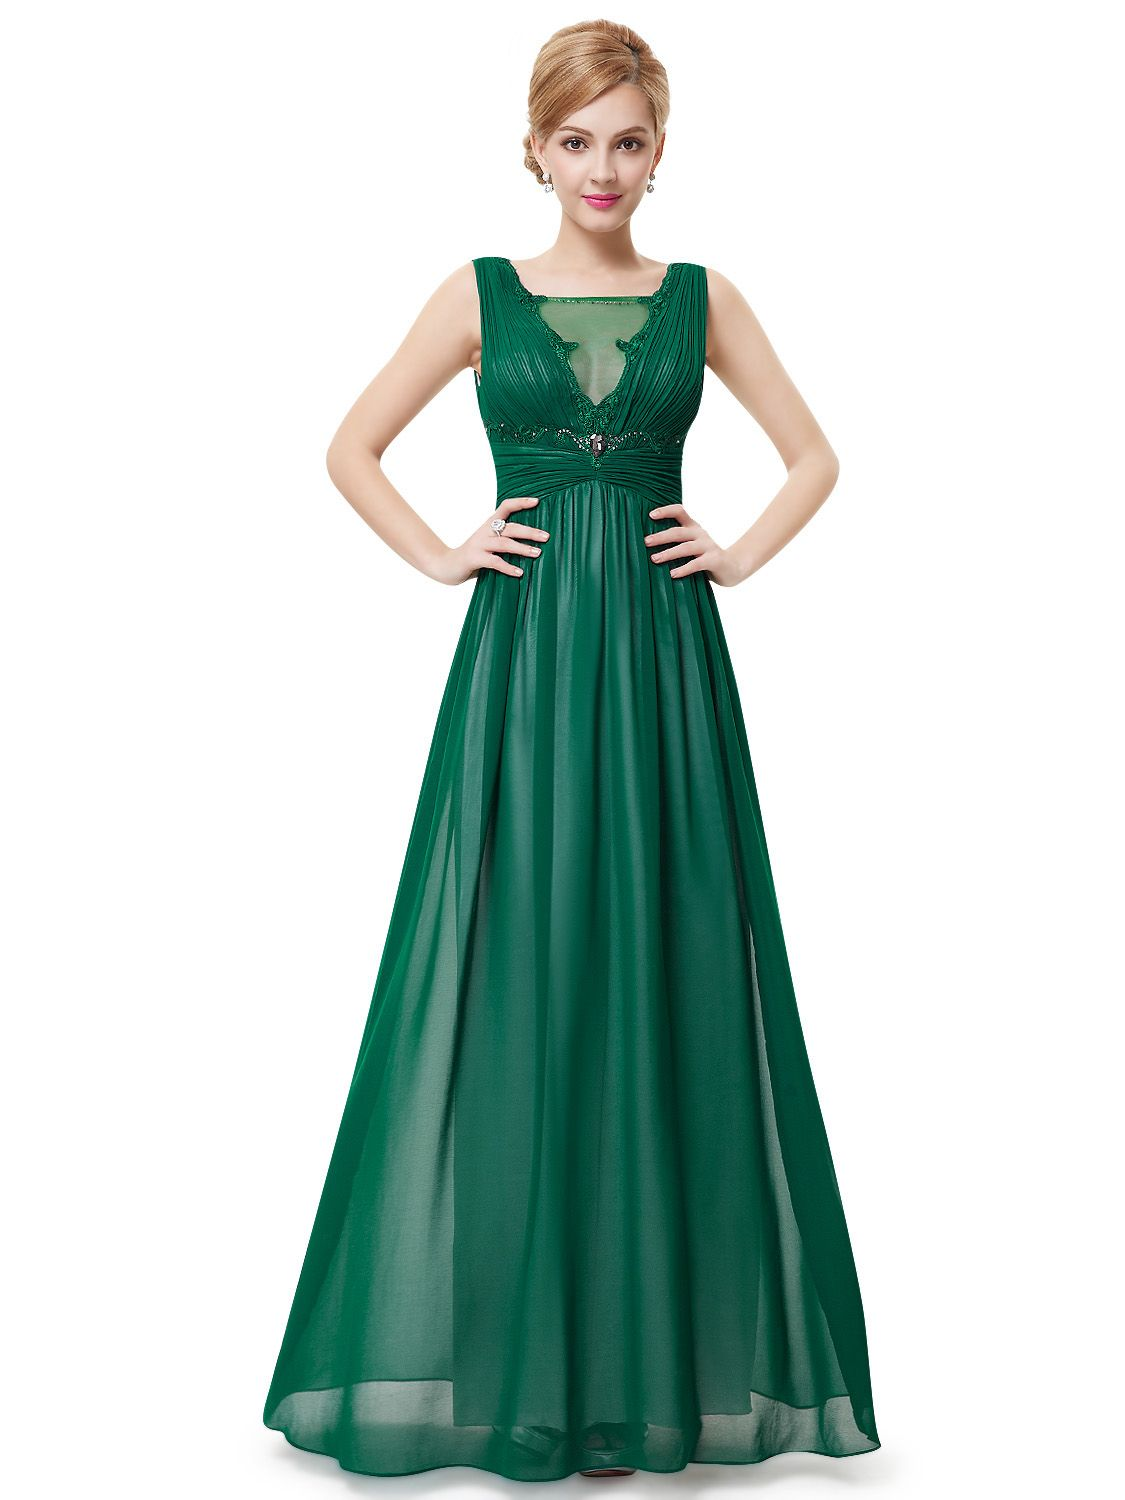 Emerald Green Cocktail Dress Fifty Shades Of Grey Green Cocktail